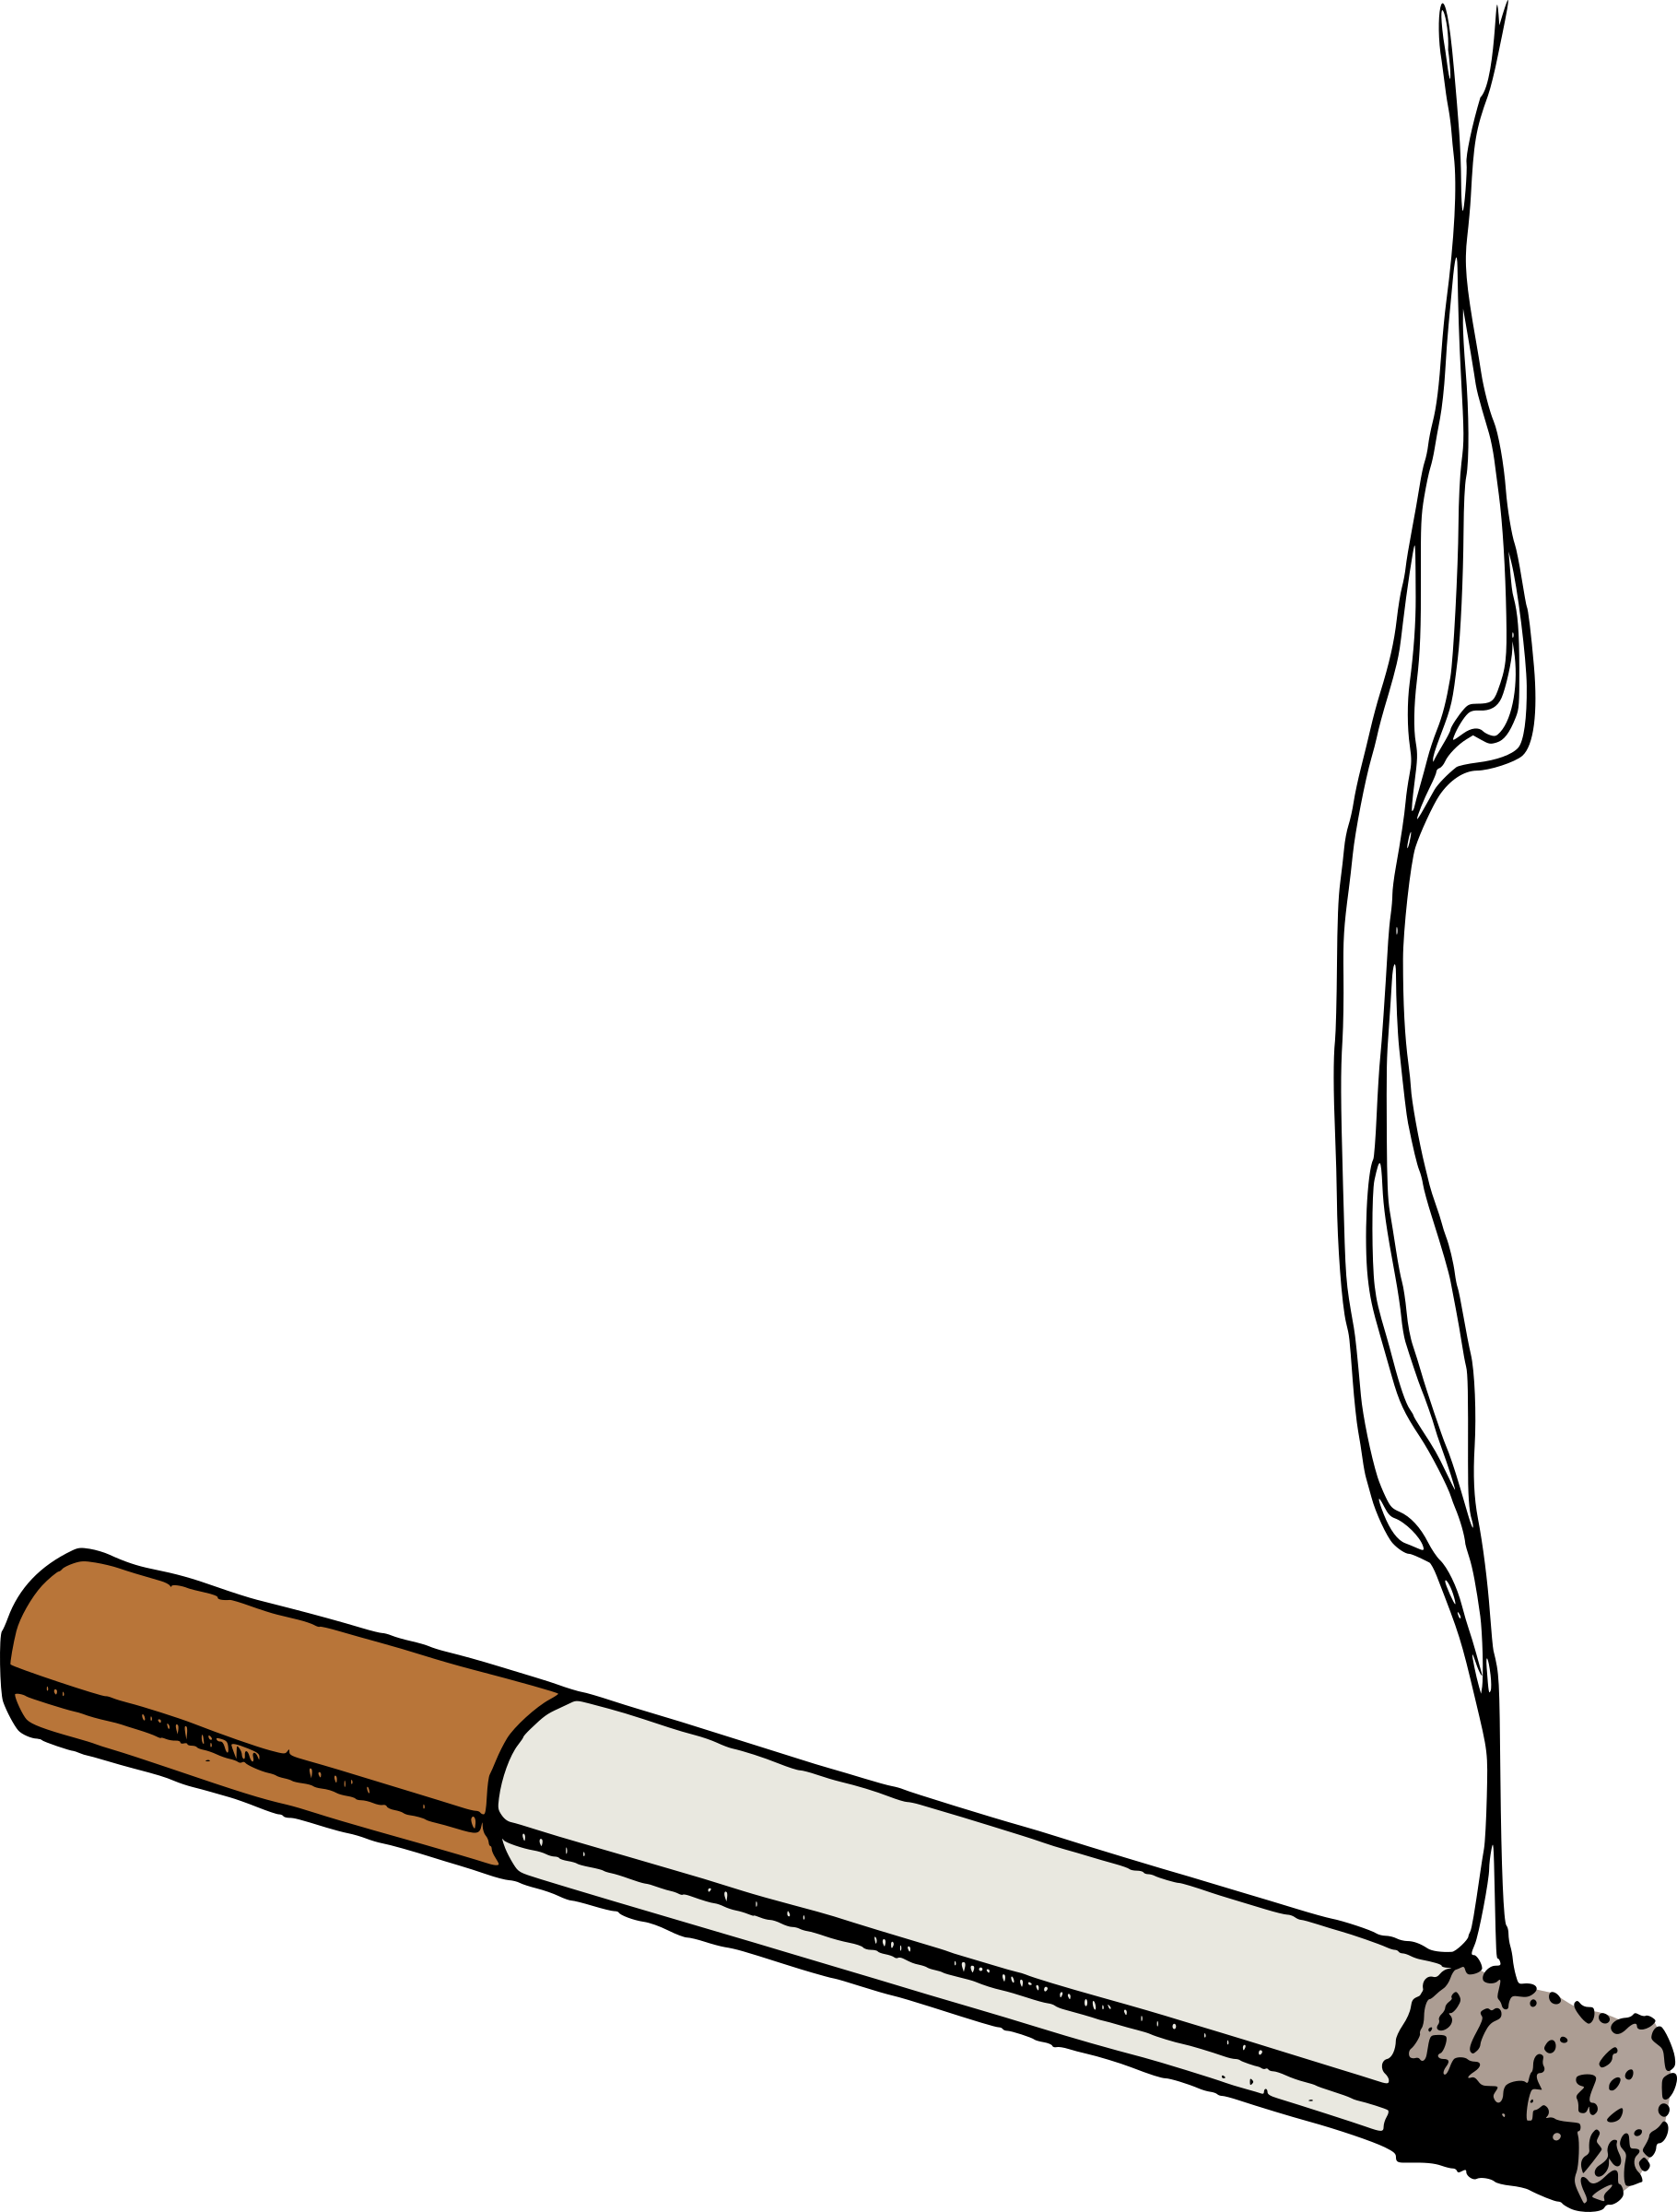 Colour cigarette big image. Marijuana clipart animated